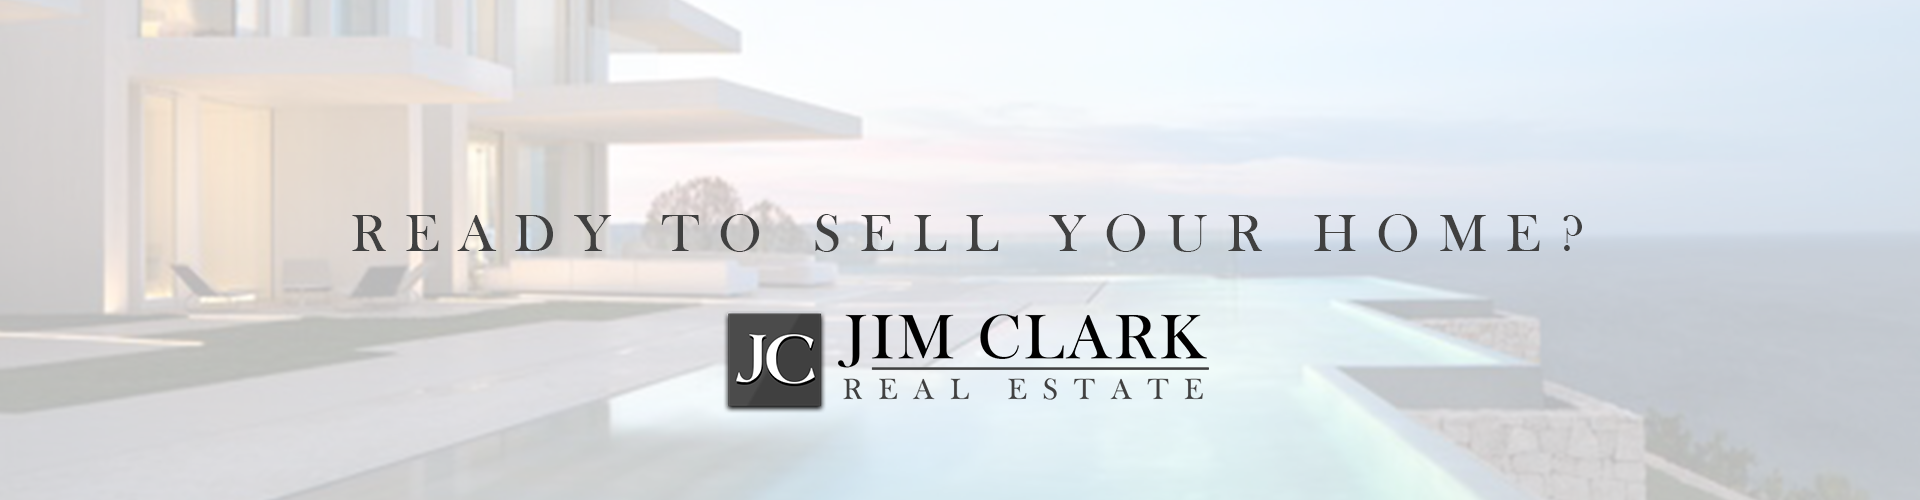 Jim Clark Real Estate Calabasas CA